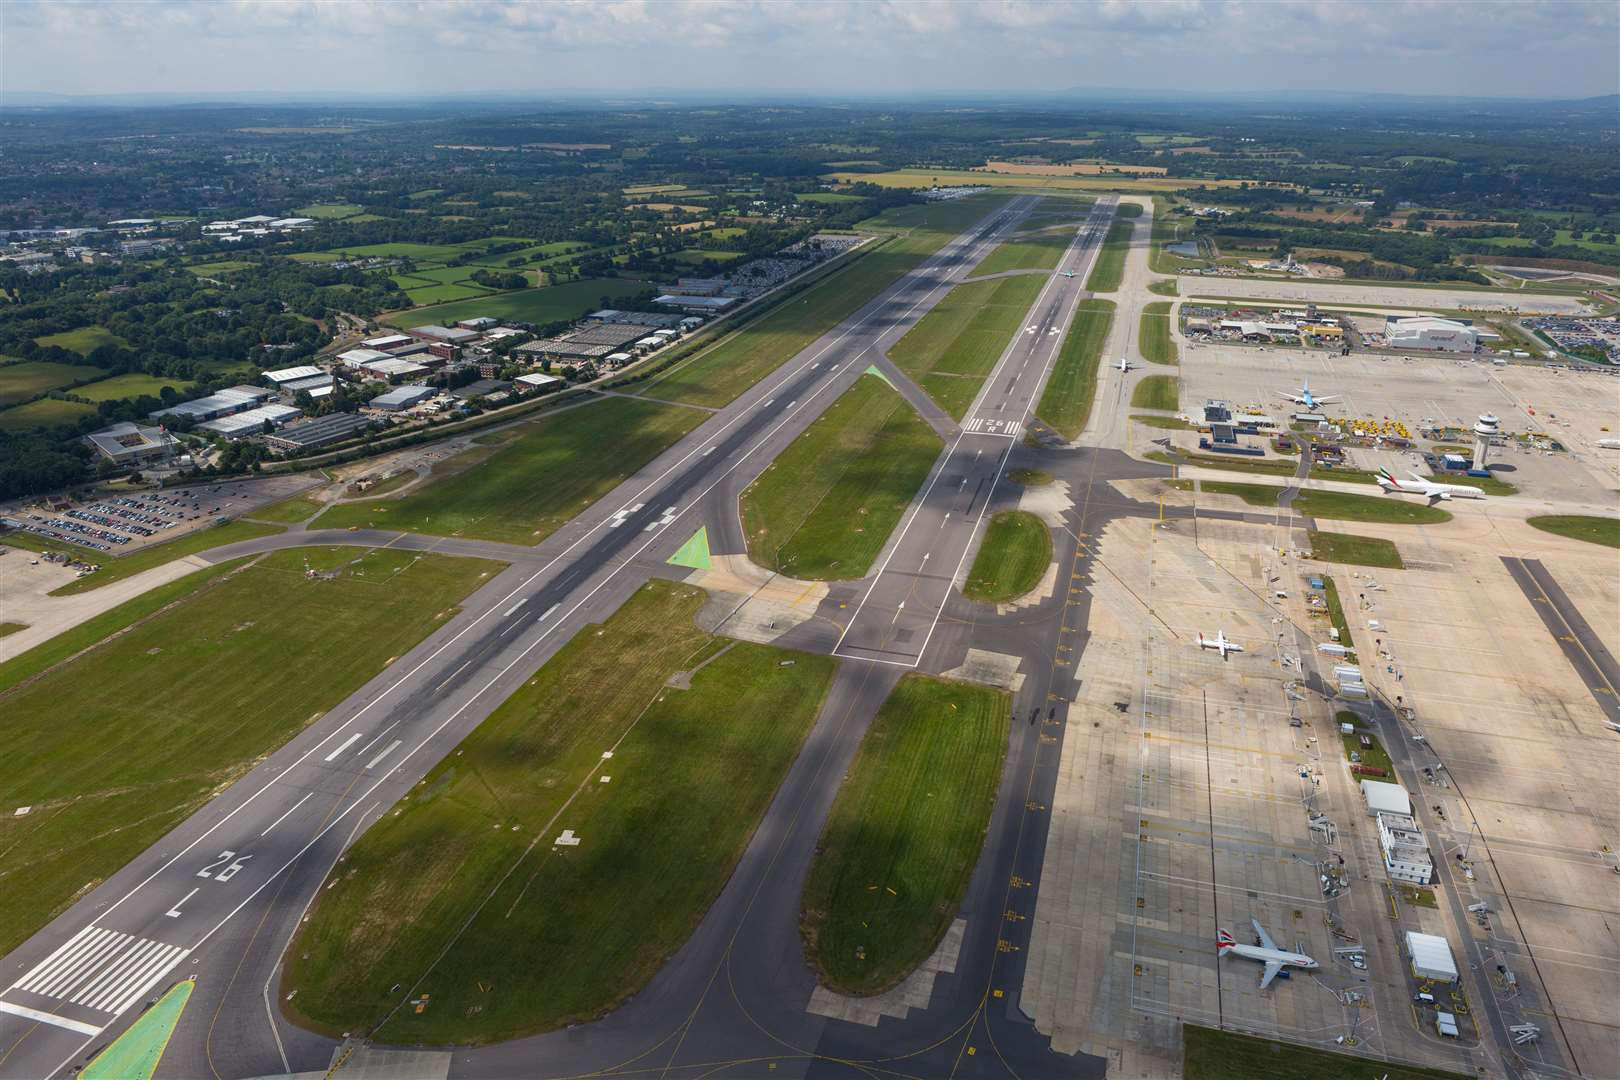 Gatwick Airport. Picture: Countrywide Photographic